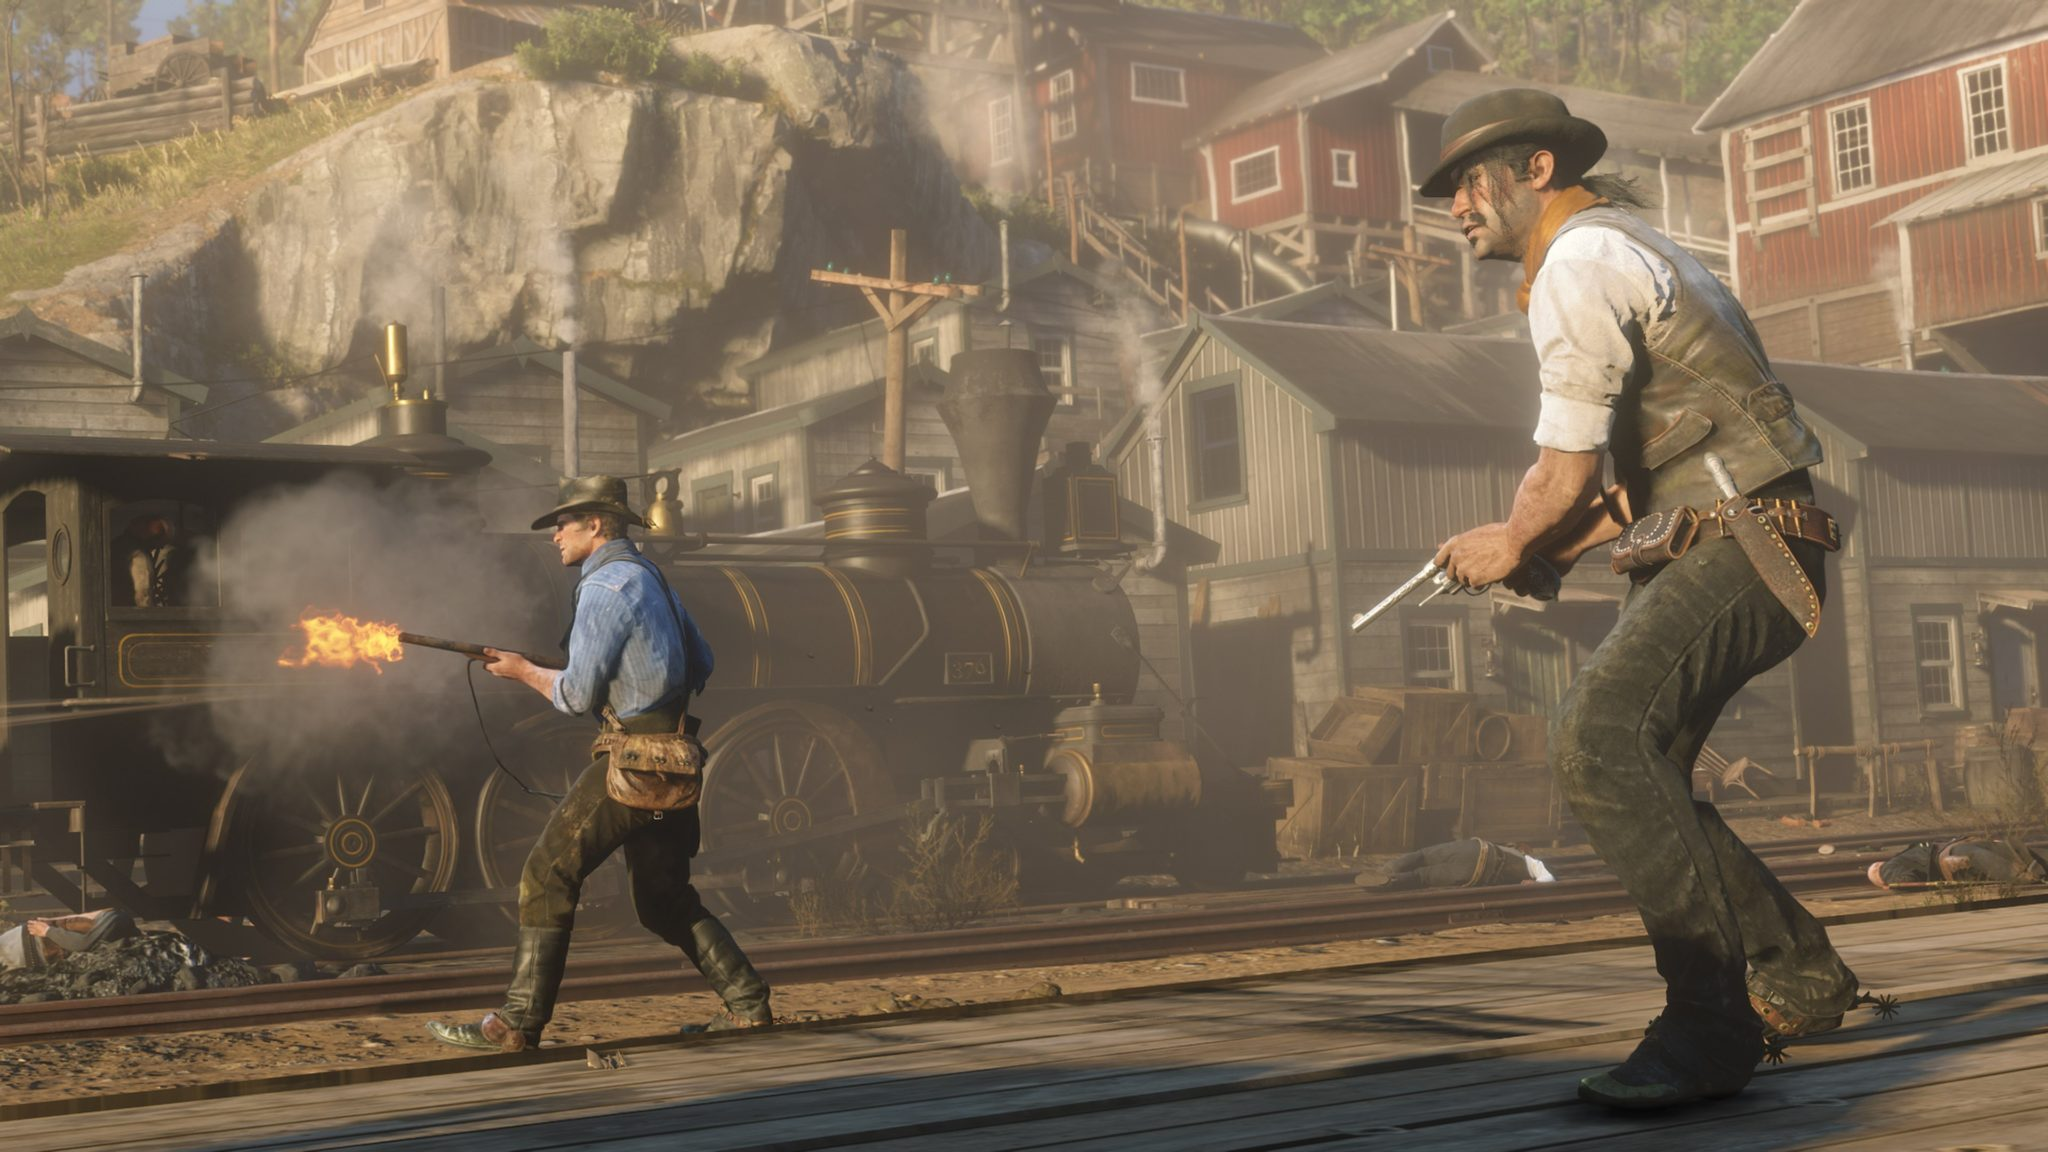 Red Dead Redemption 2 was a huge hit in games